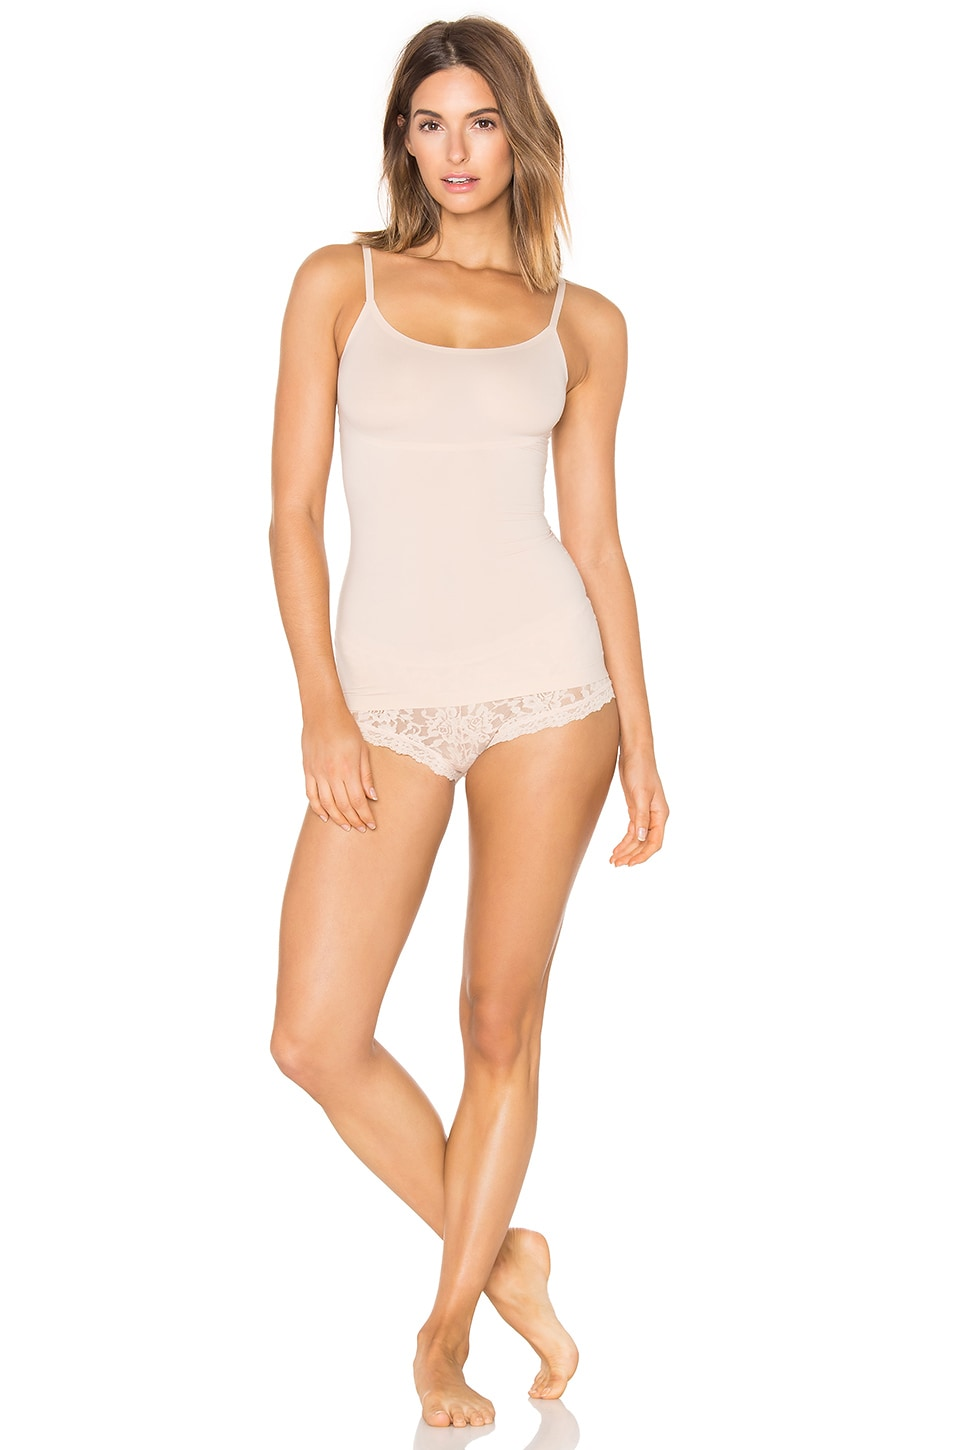 Spanx Trust Your Thinstincts Camisole In Soft Nude Modesens